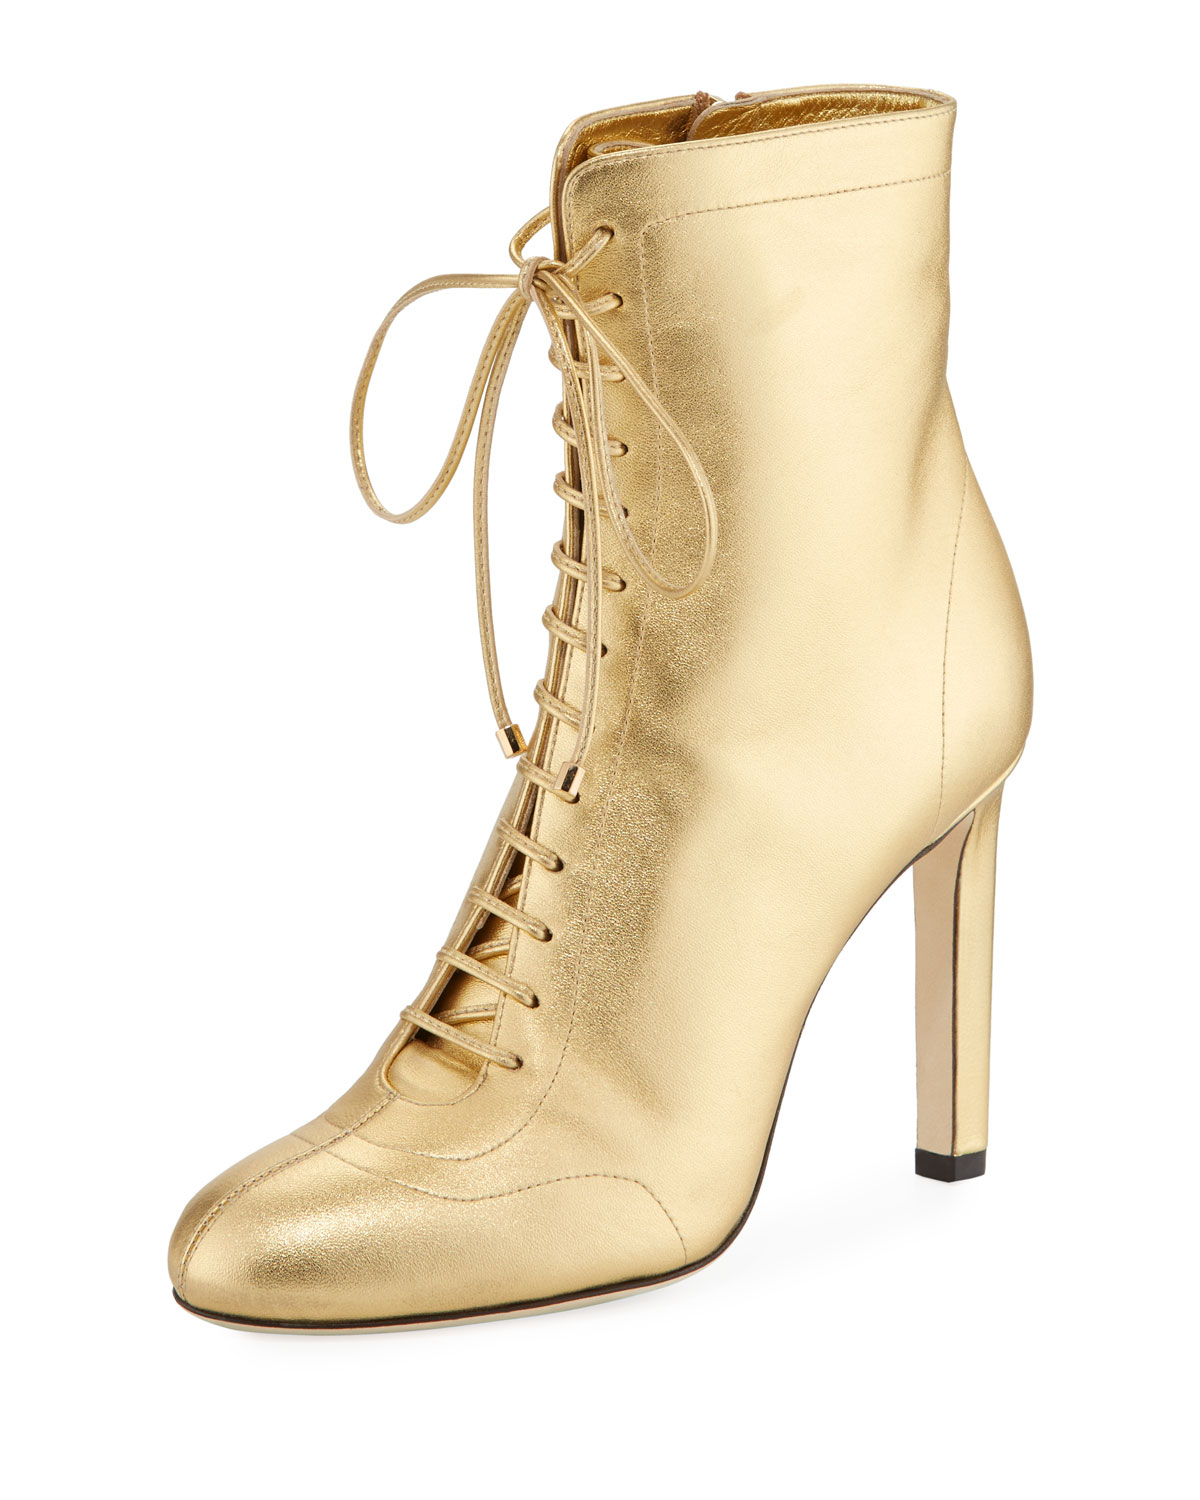 a3110b929e534 Jimmy Choo Daize 100mm Metallic Leather Booties | Neiman Marcus